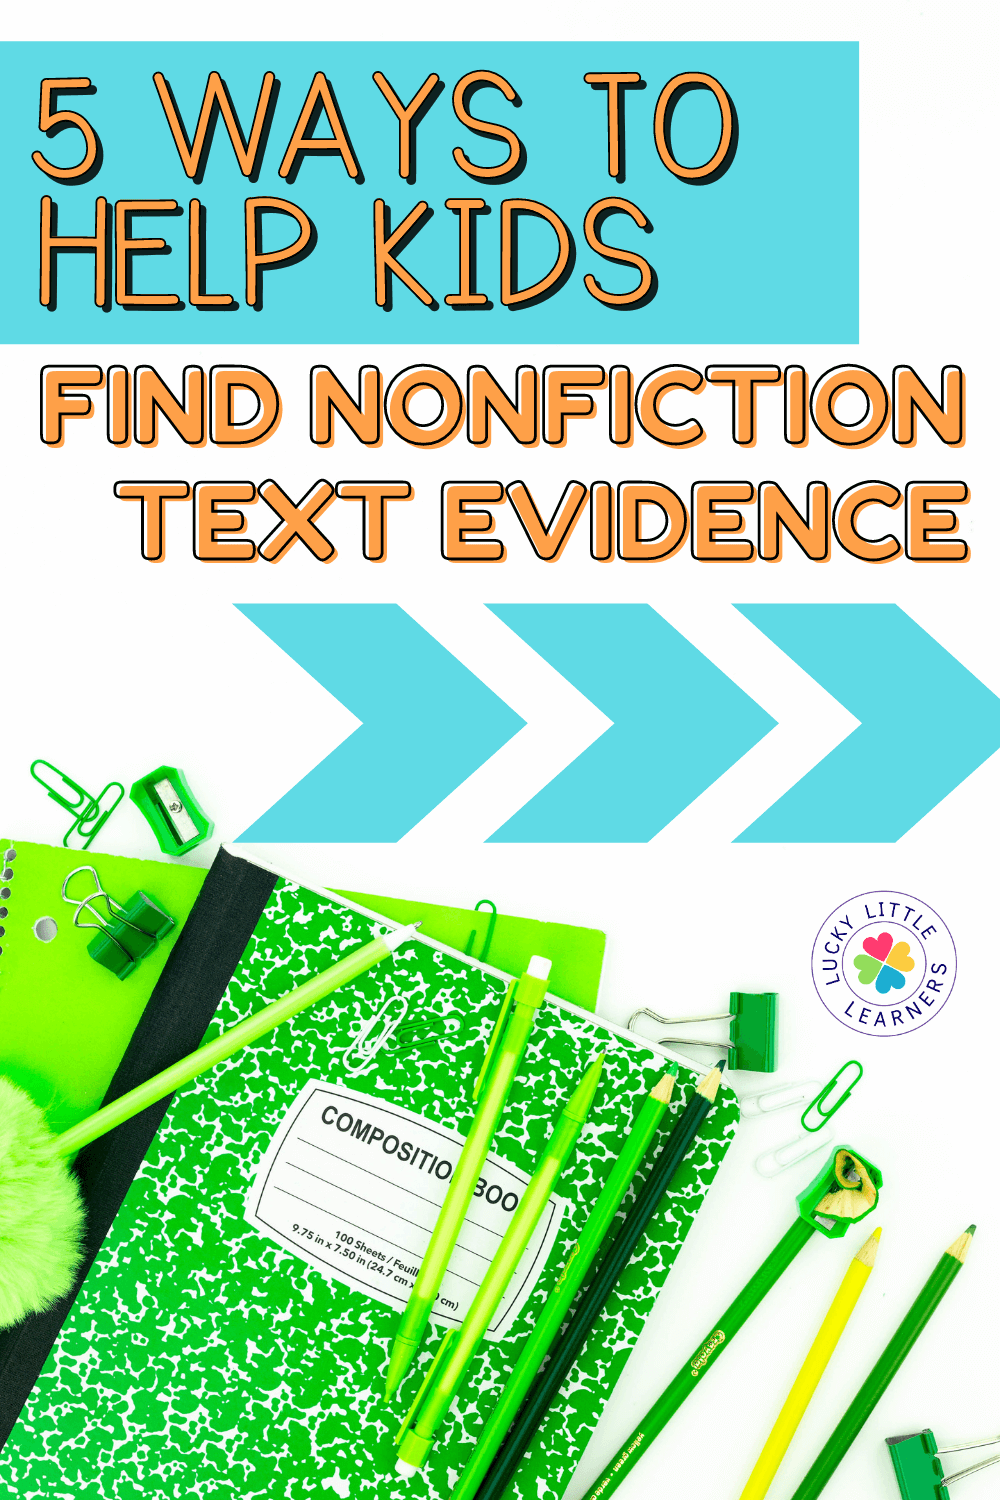 nonfiction-text-evidence